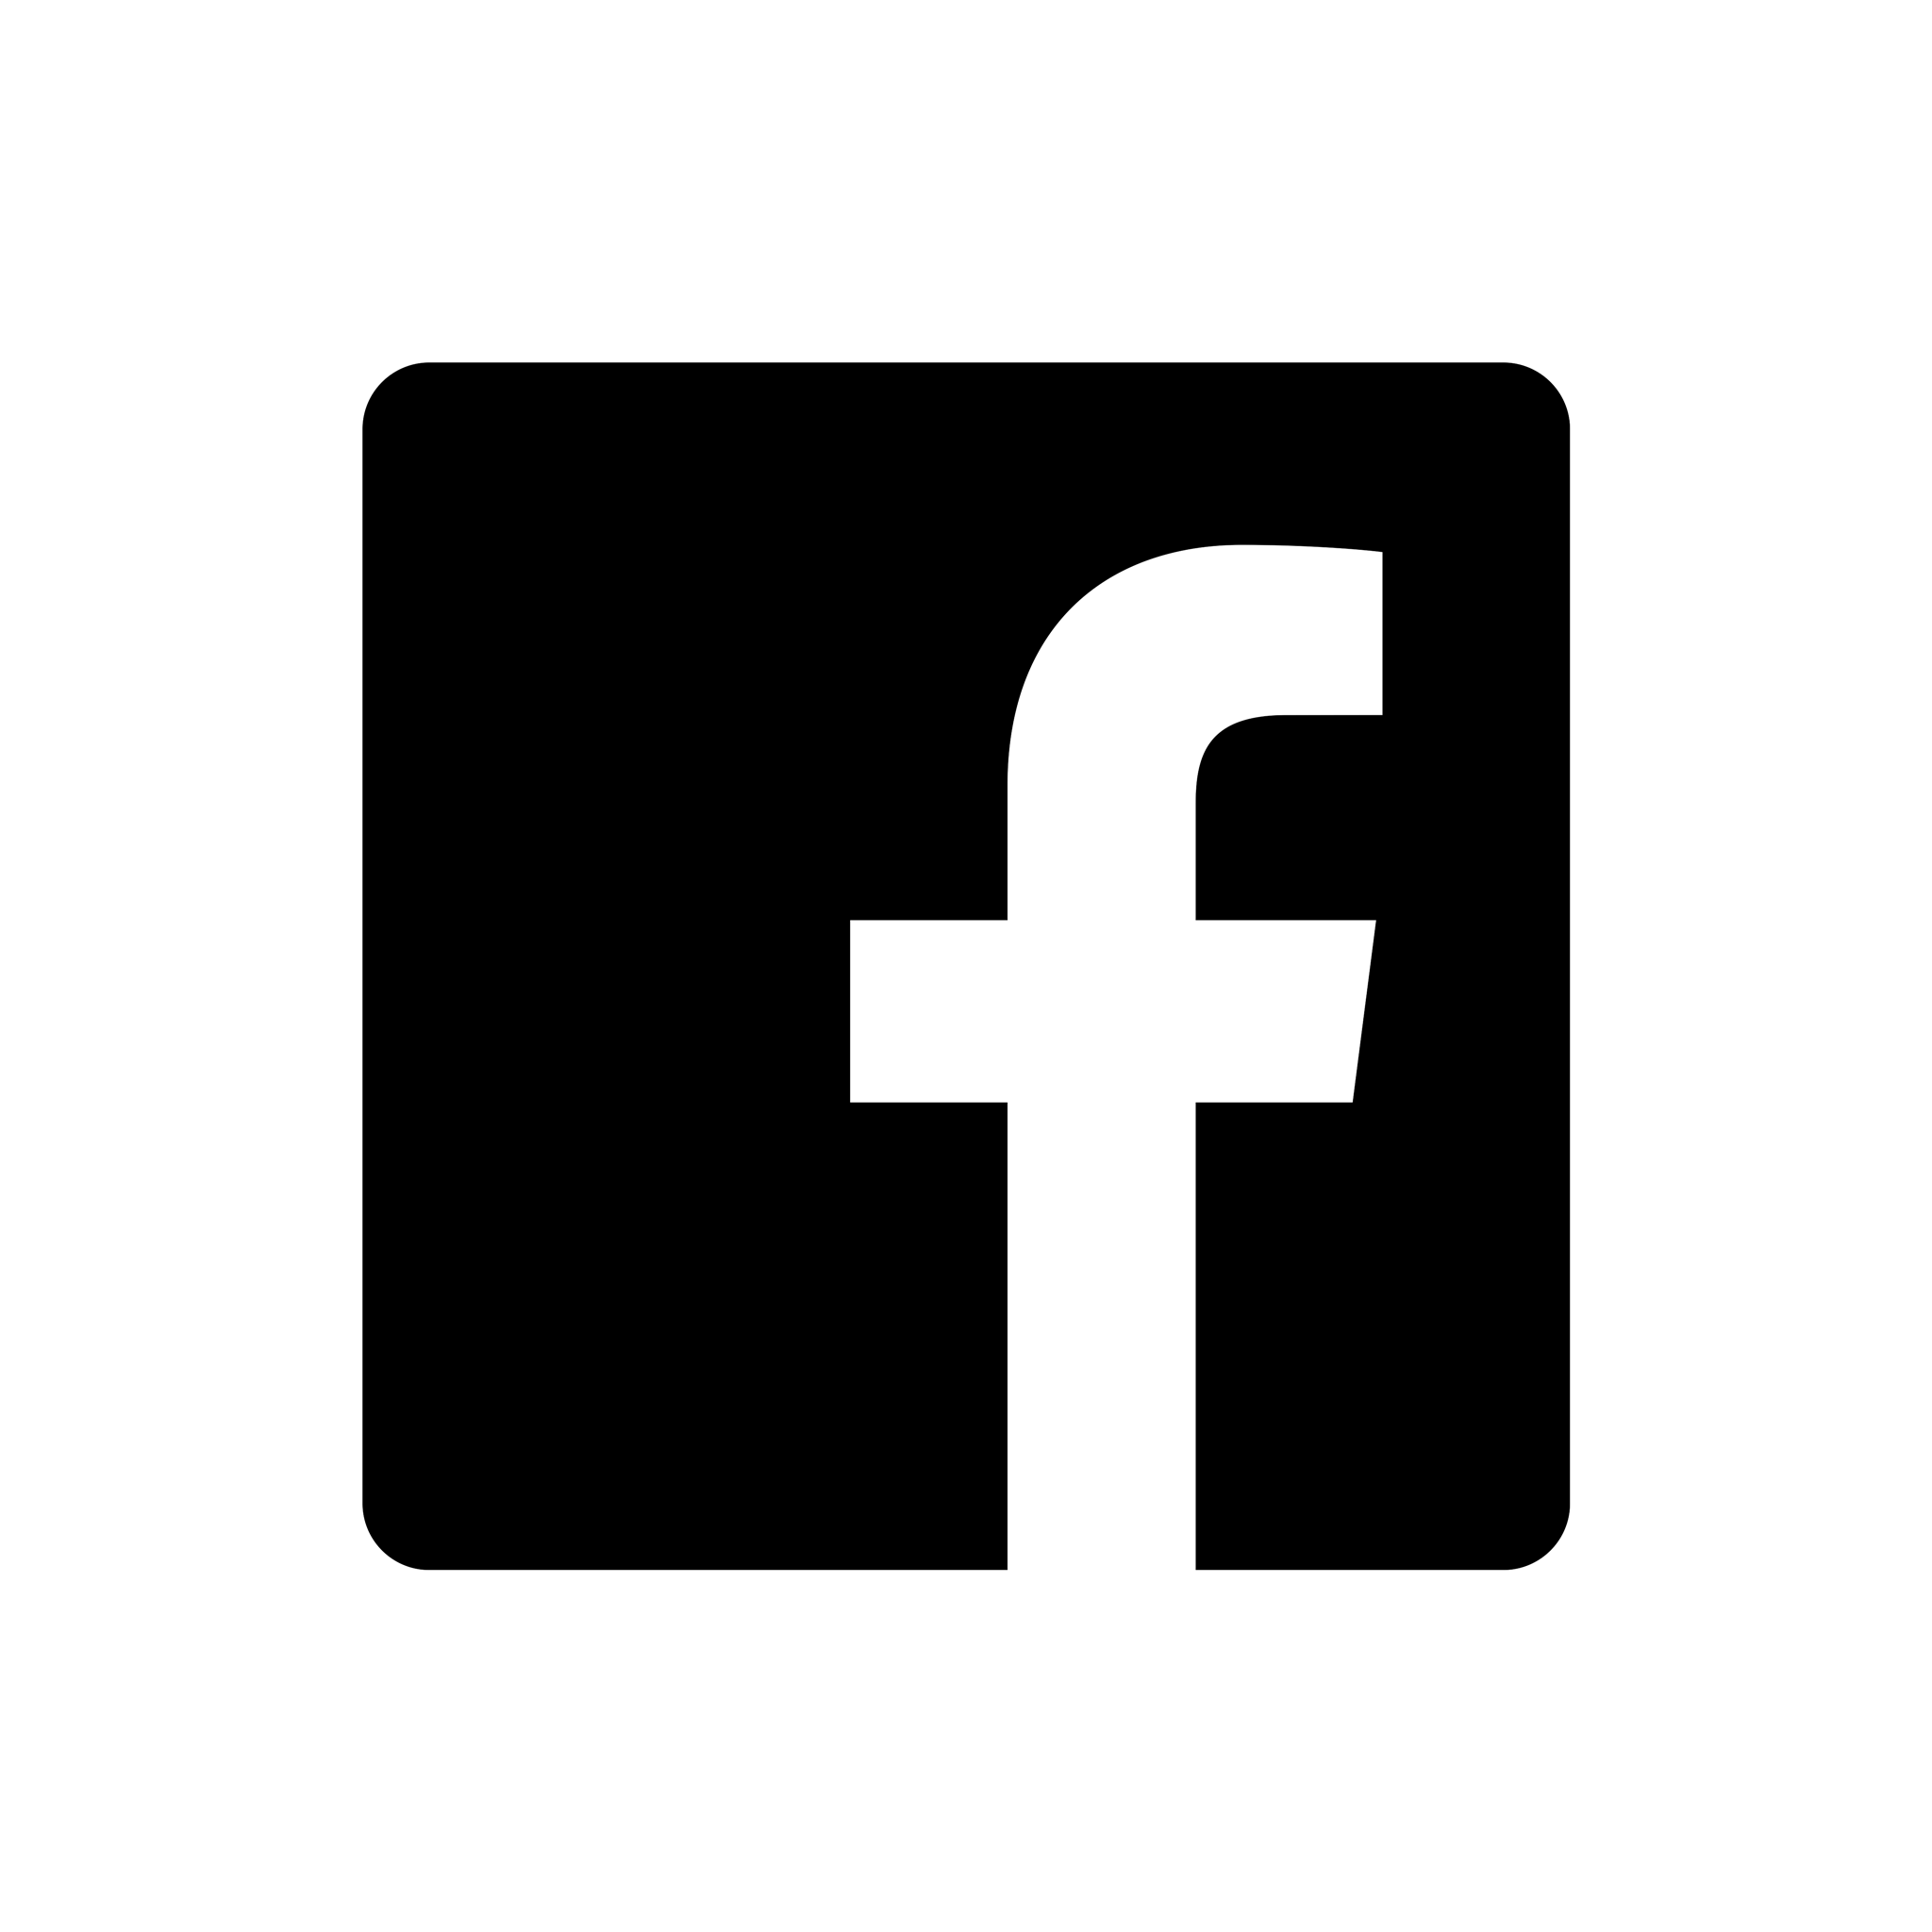 facebook-black-icon.png